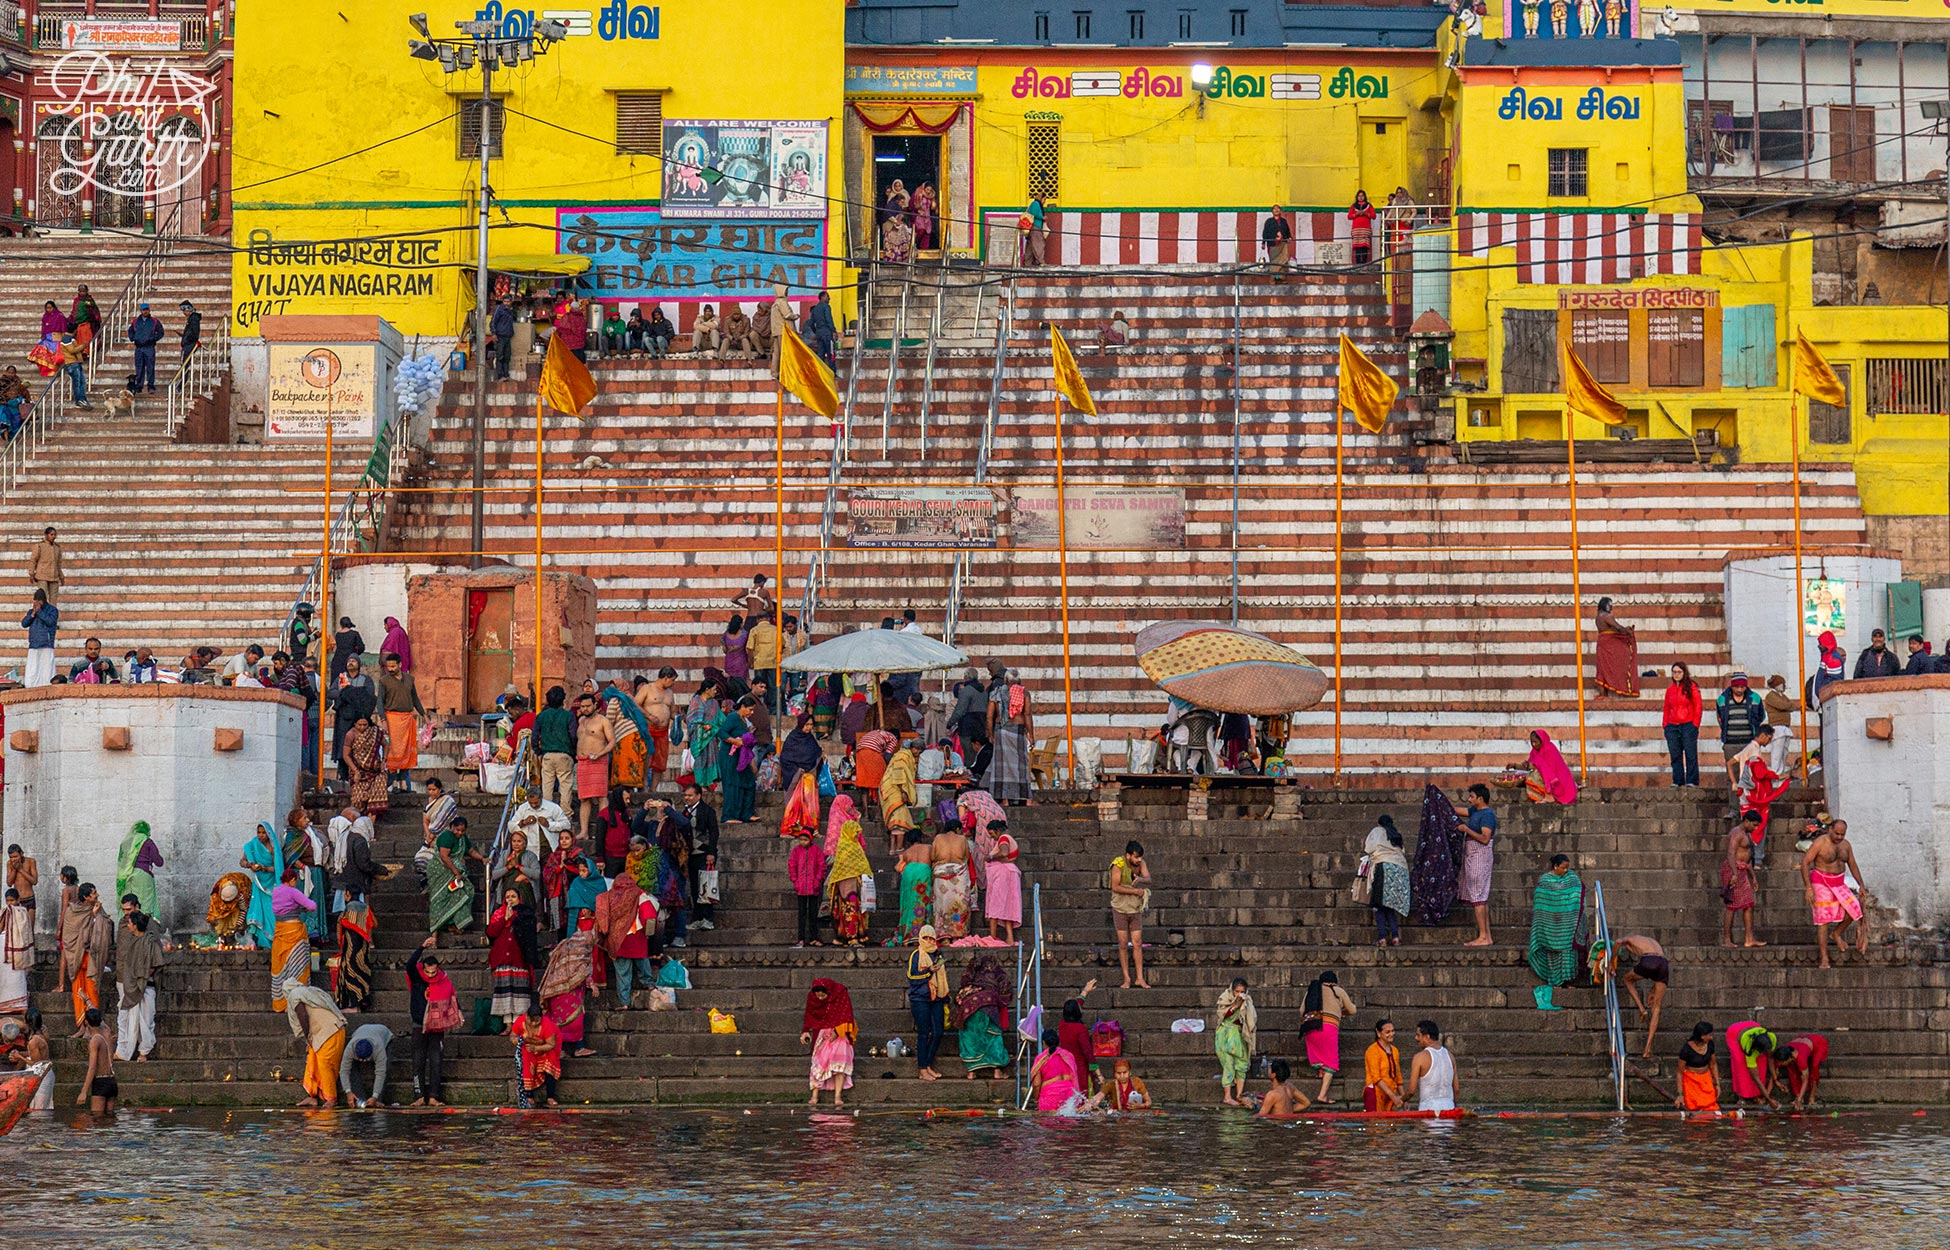 People take dips in the holy water of the River Ganges to wash away sins